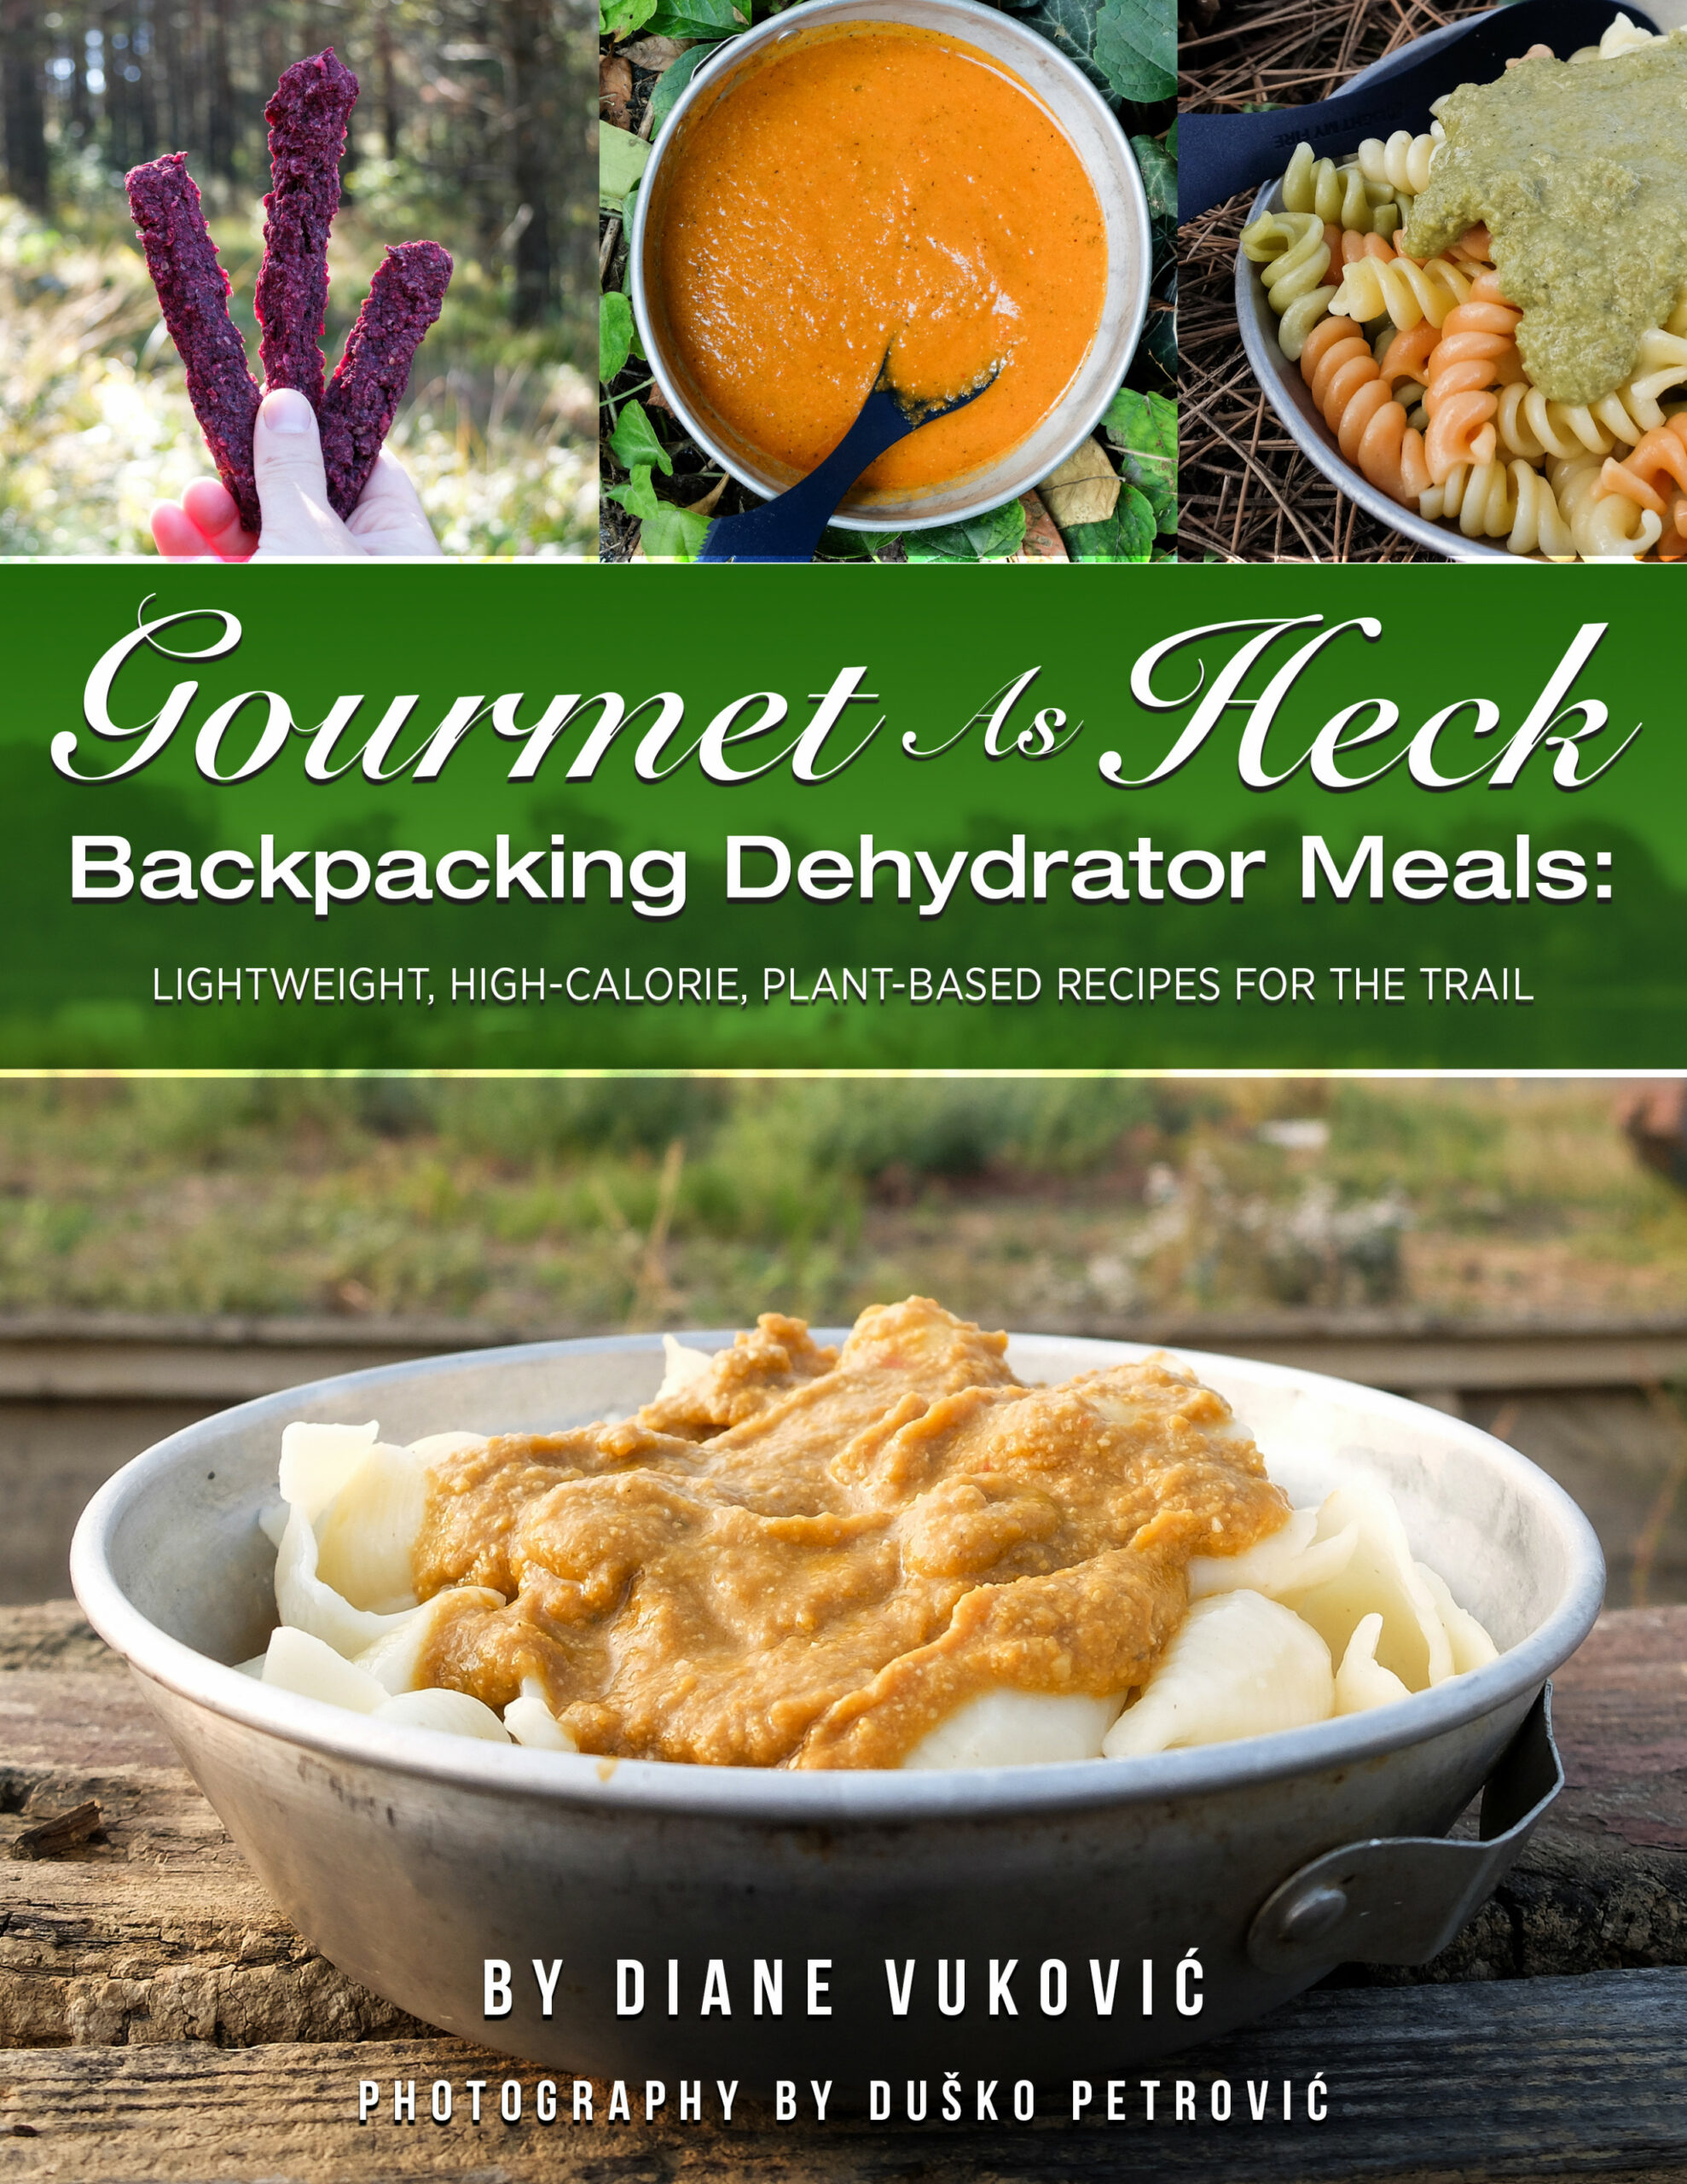 Gourmet As Heck Backpacking Dehydrator Meals: Lightweight, High-Calorie,  Plant-Based Recipes for the Trail, an Ebook by Diane Vukovic - food dehydrator recipes